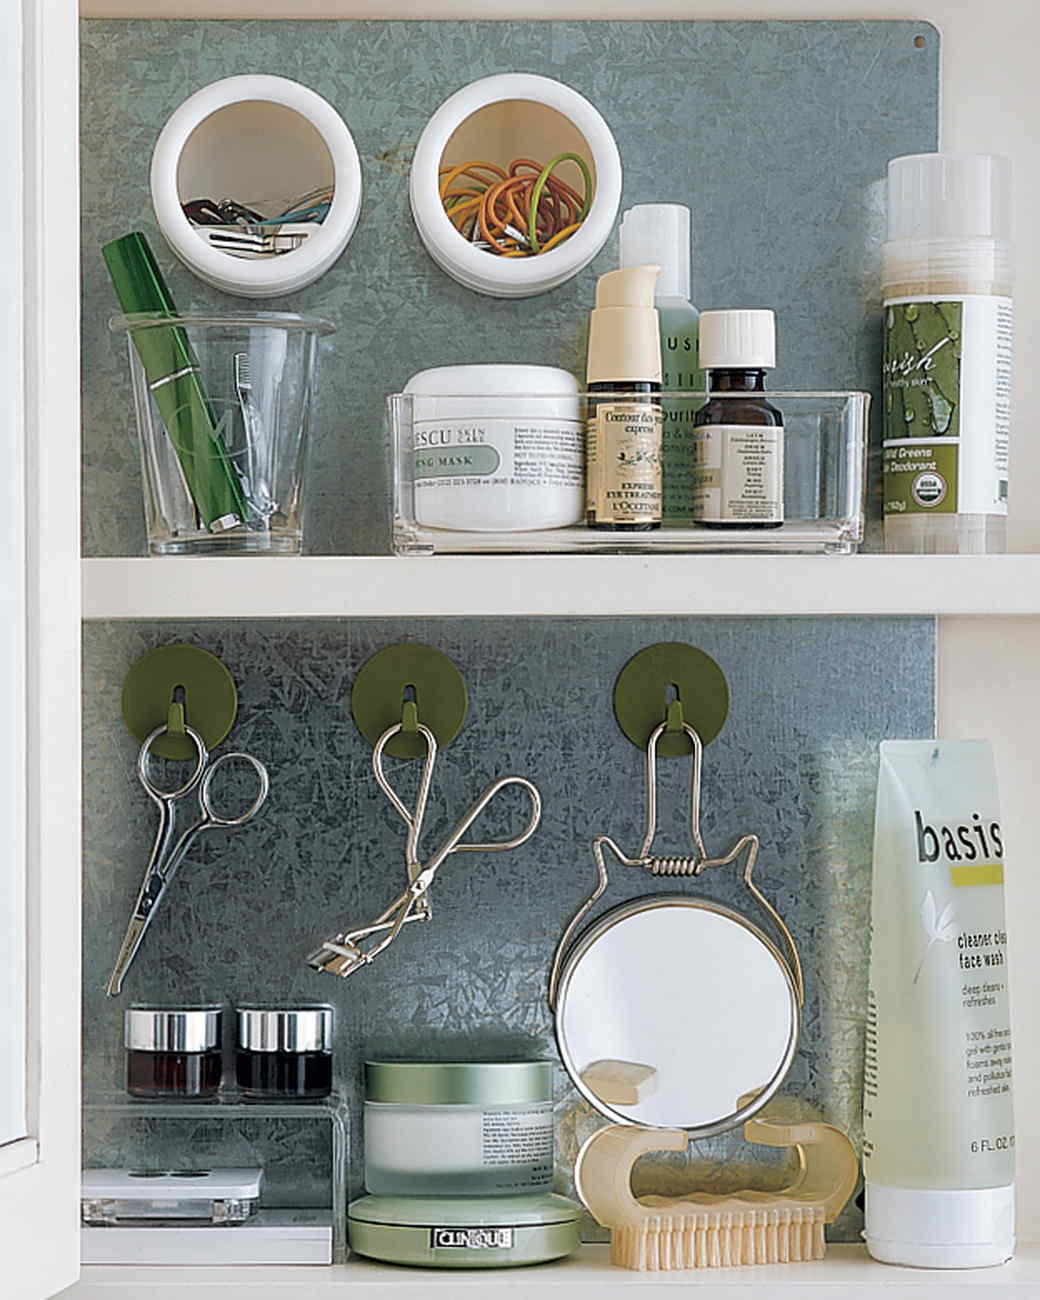 Bathroom Cabinet Organizer Ideas 25 bathroom organizers | martha stewart